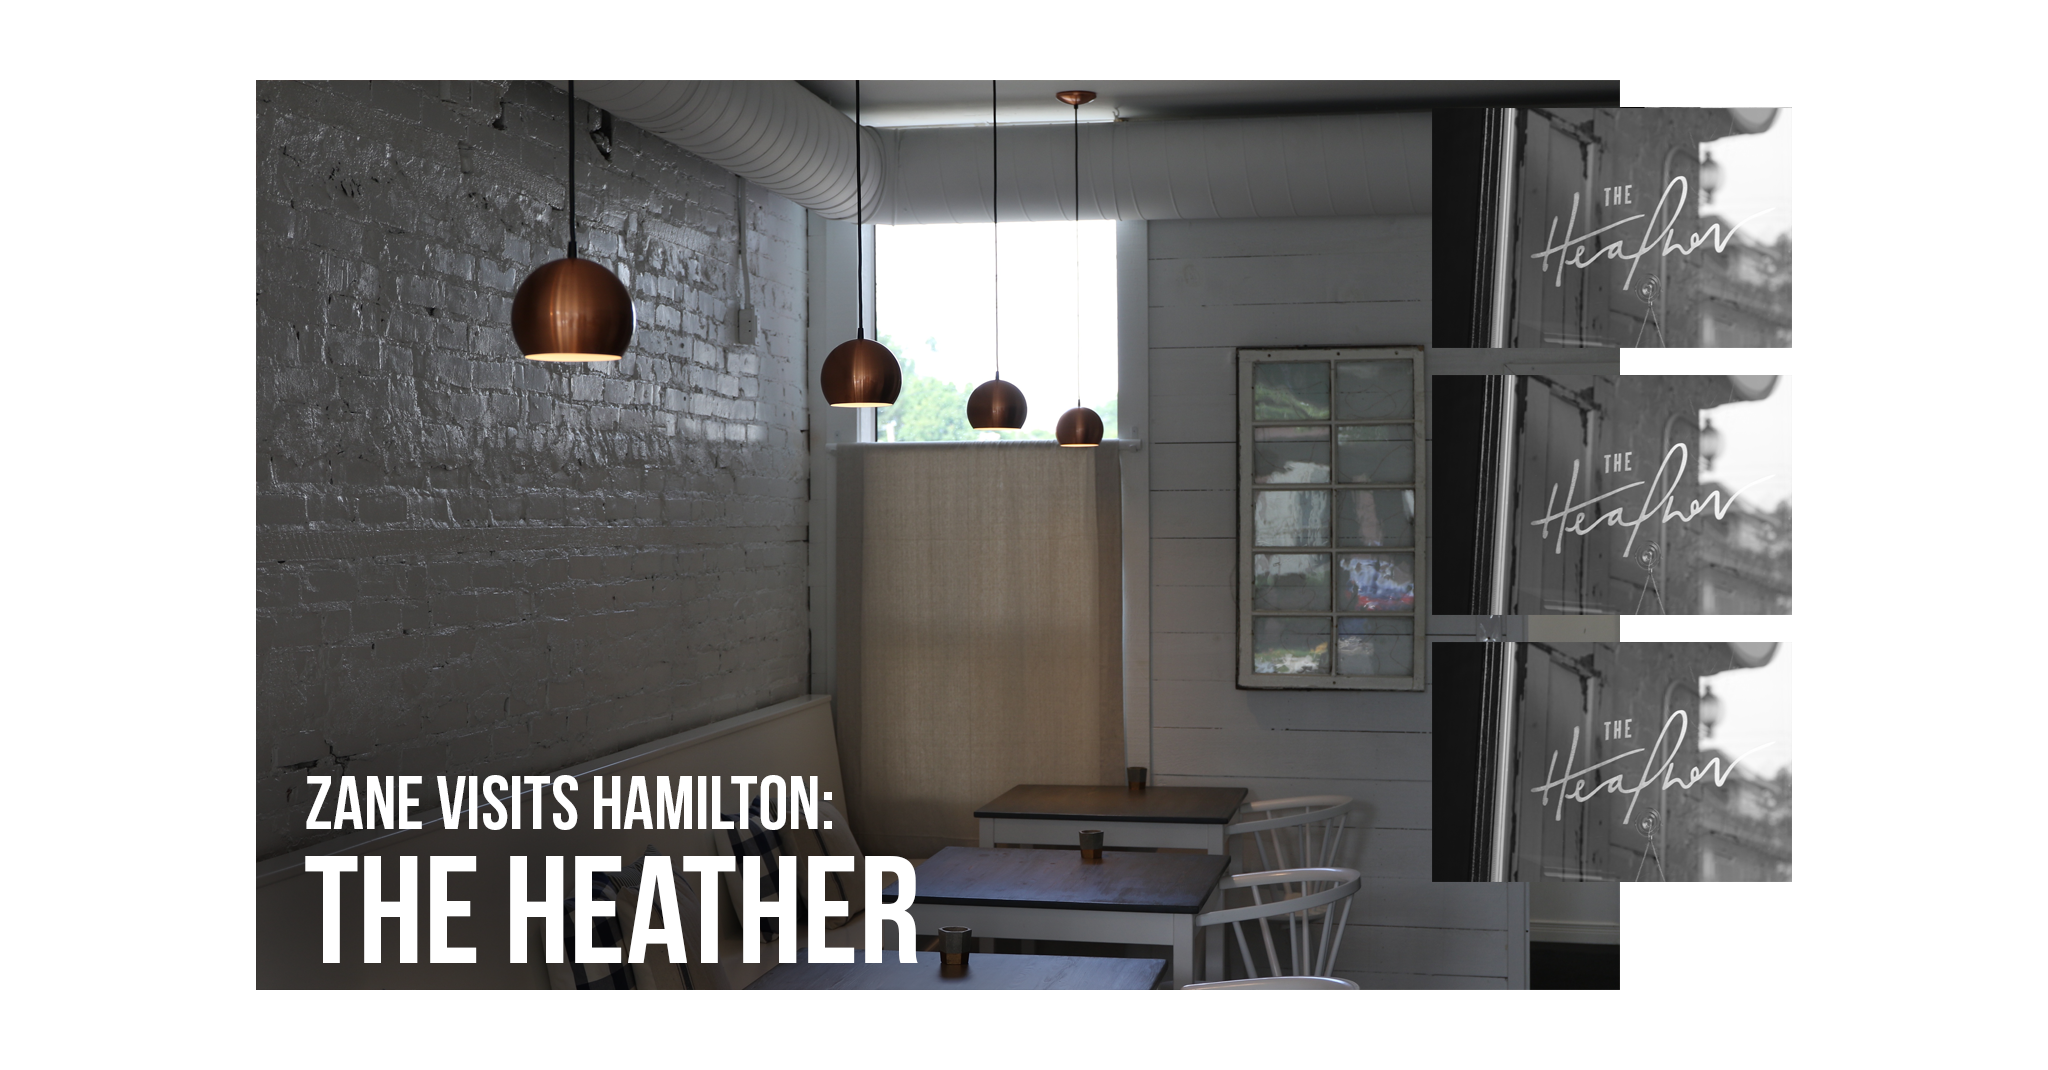 The Heather ZANE Toronto Visits Hamilton